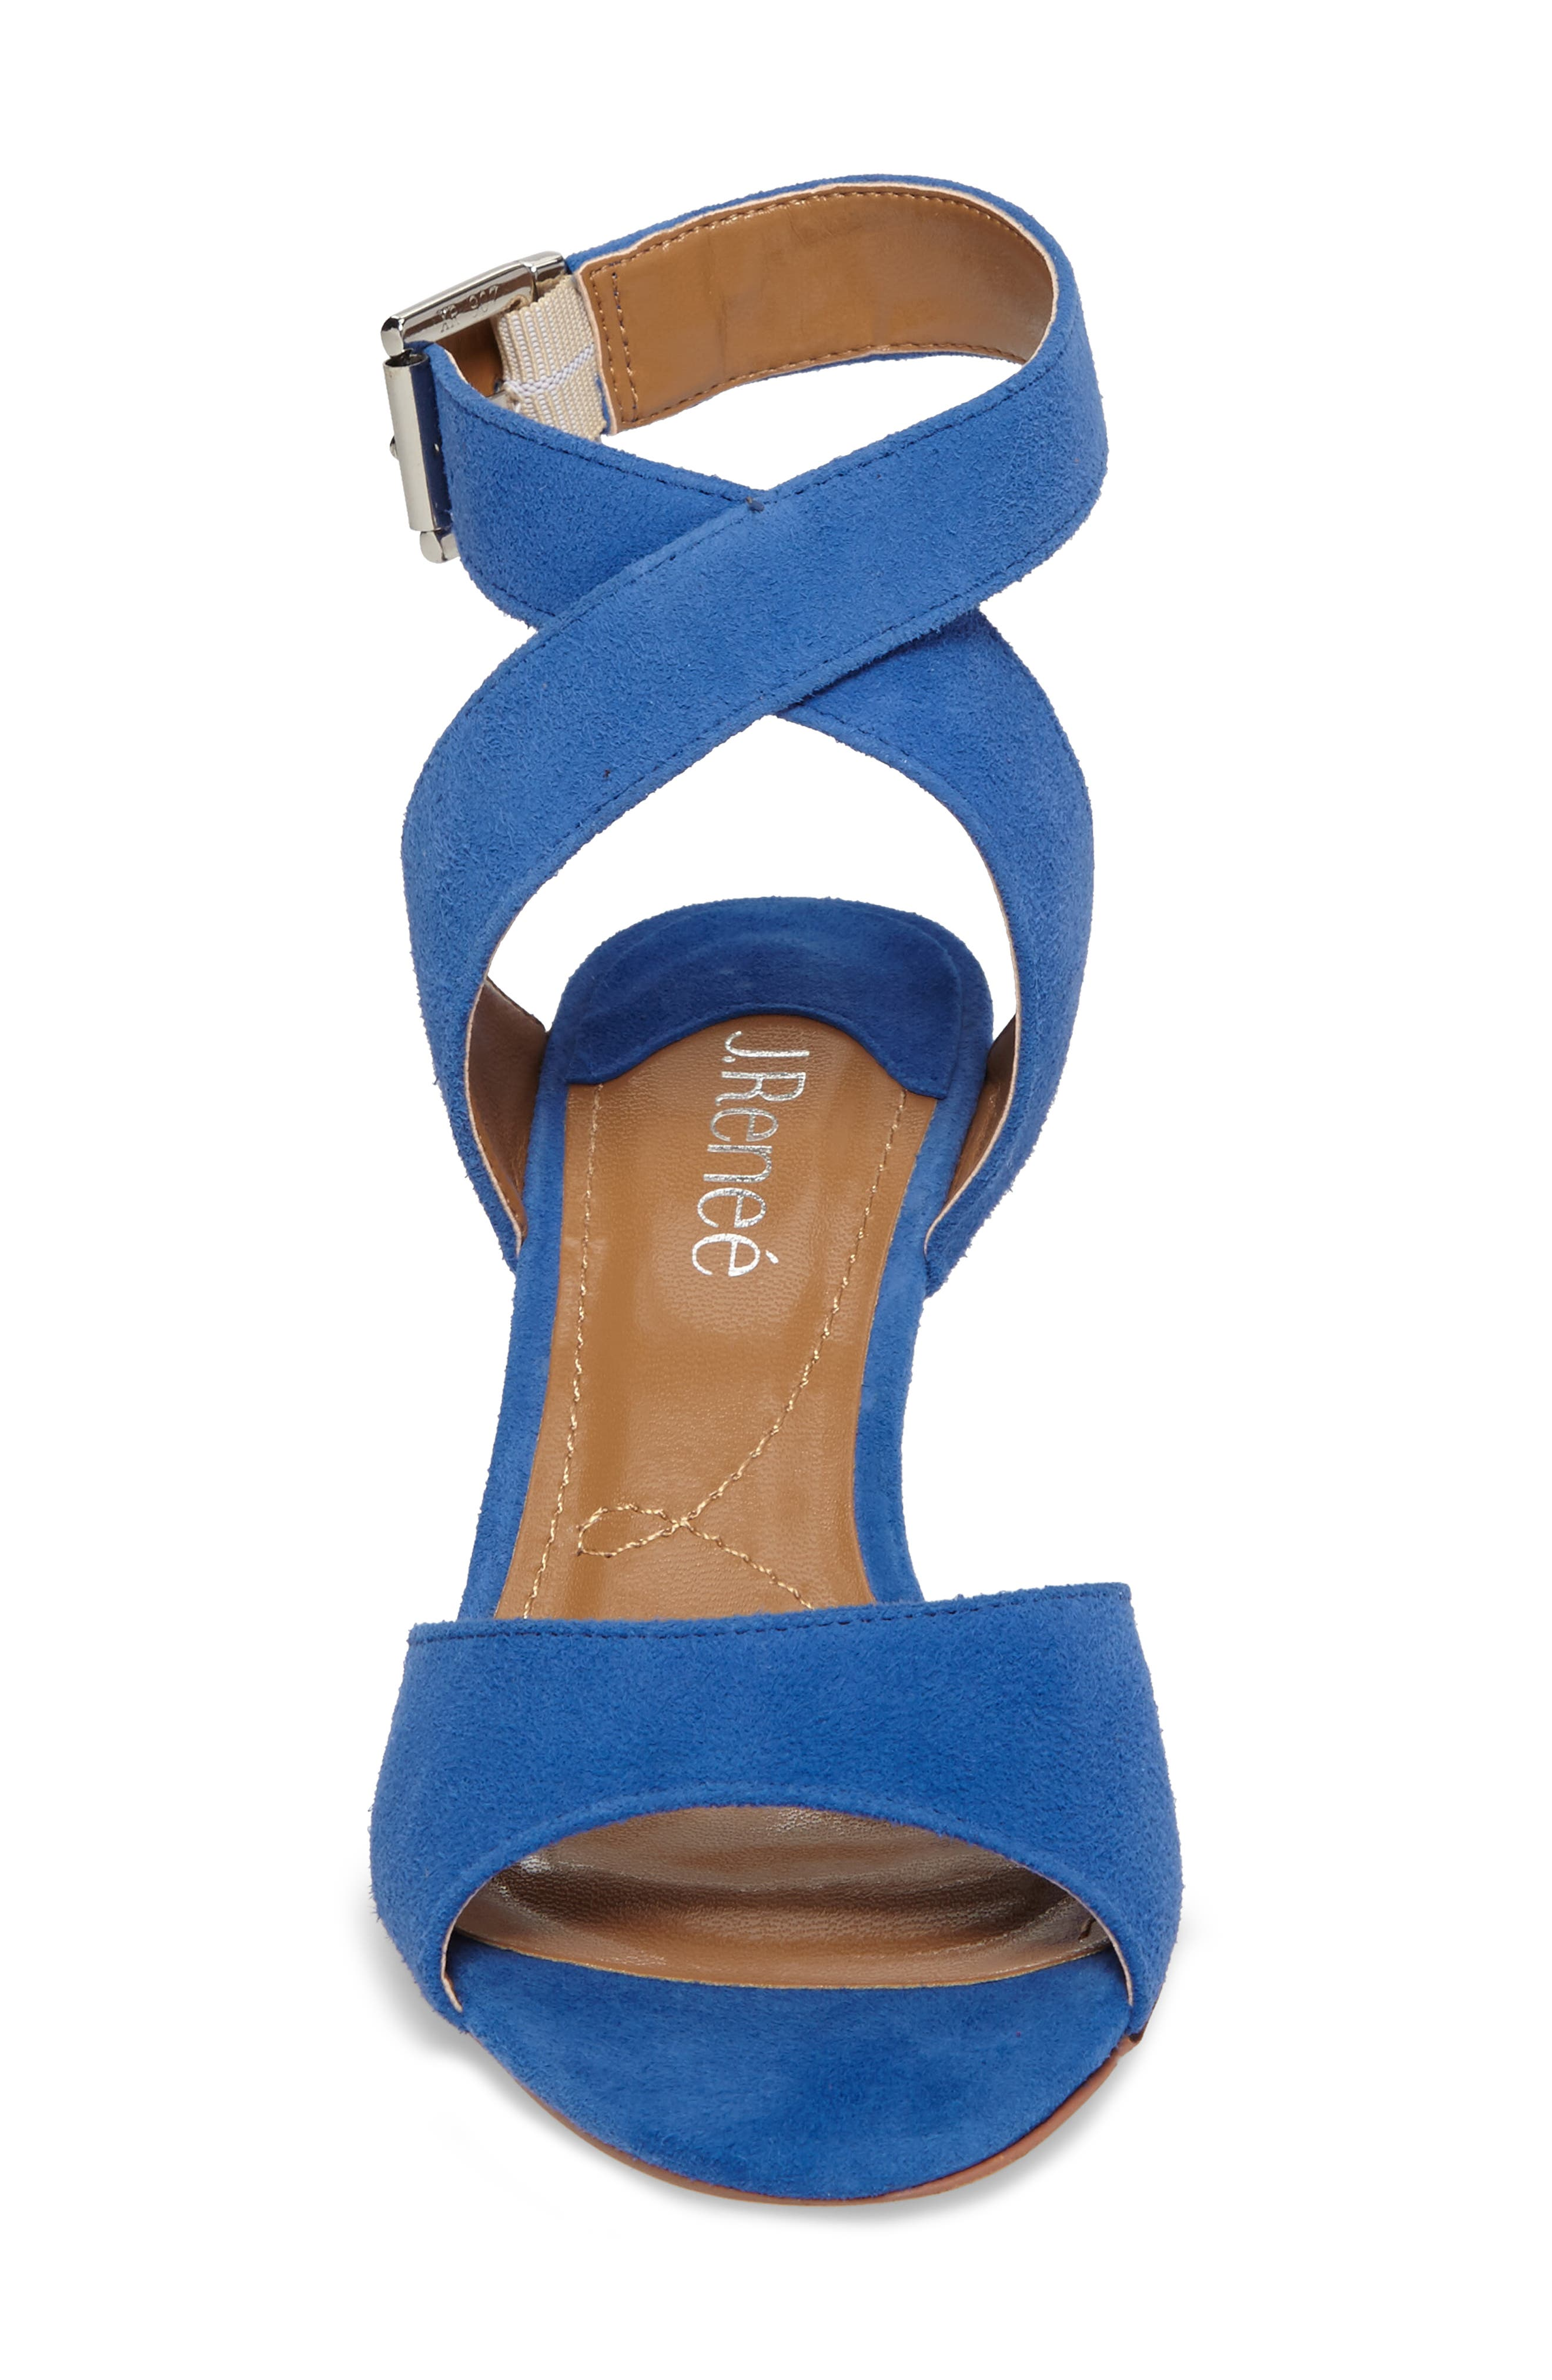 'Soncino' Ankle Strap Sandal,                             Alternate thumbnail 4, color,                             Blue Fabric